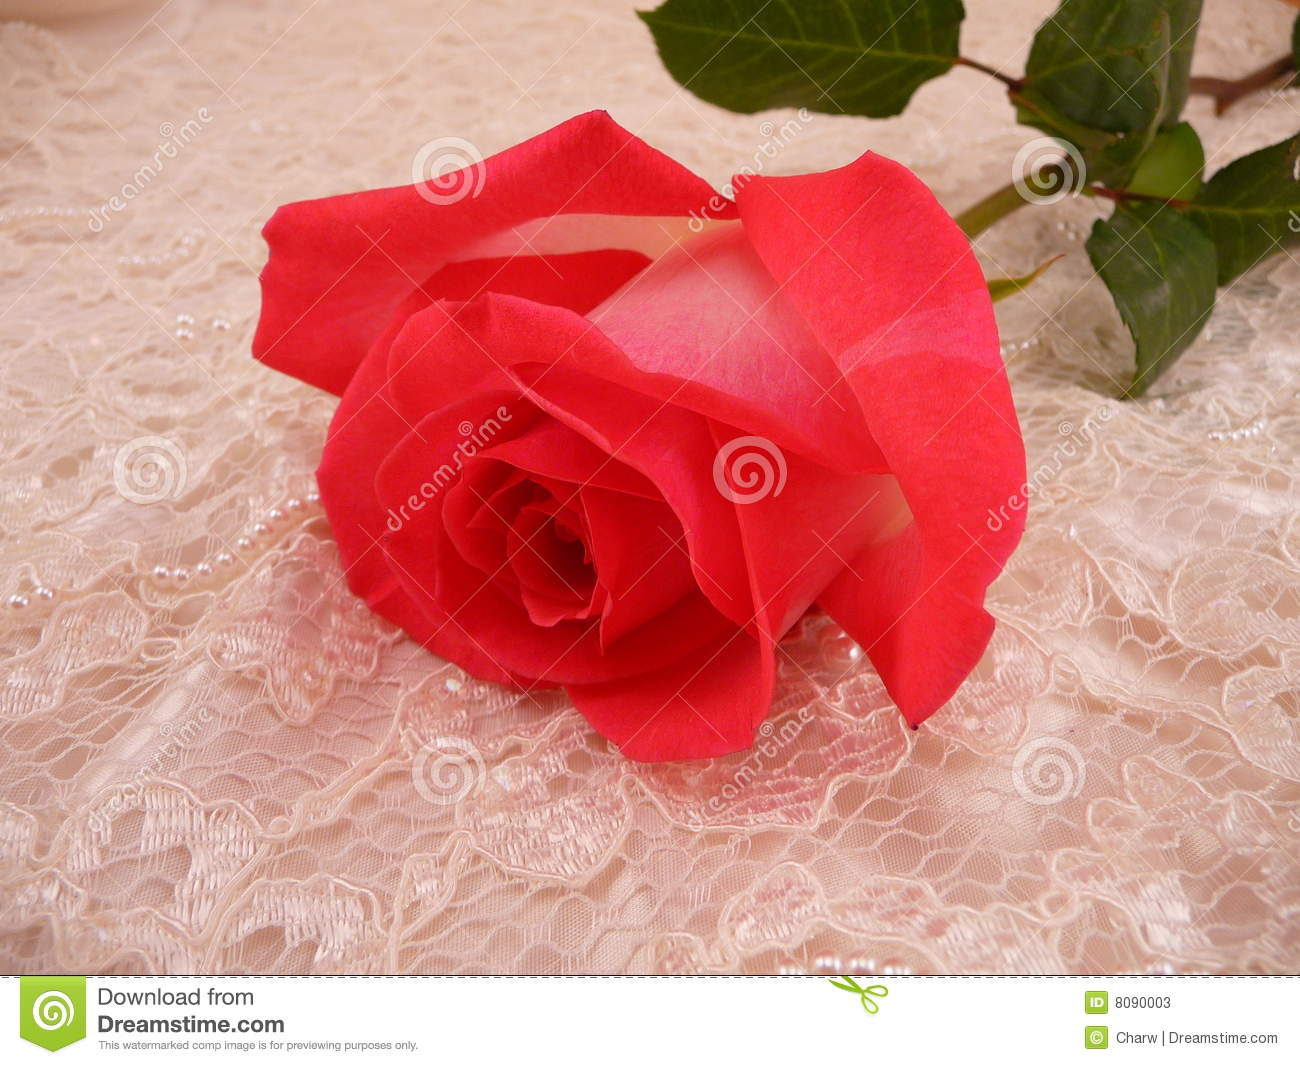 Rose and Lace